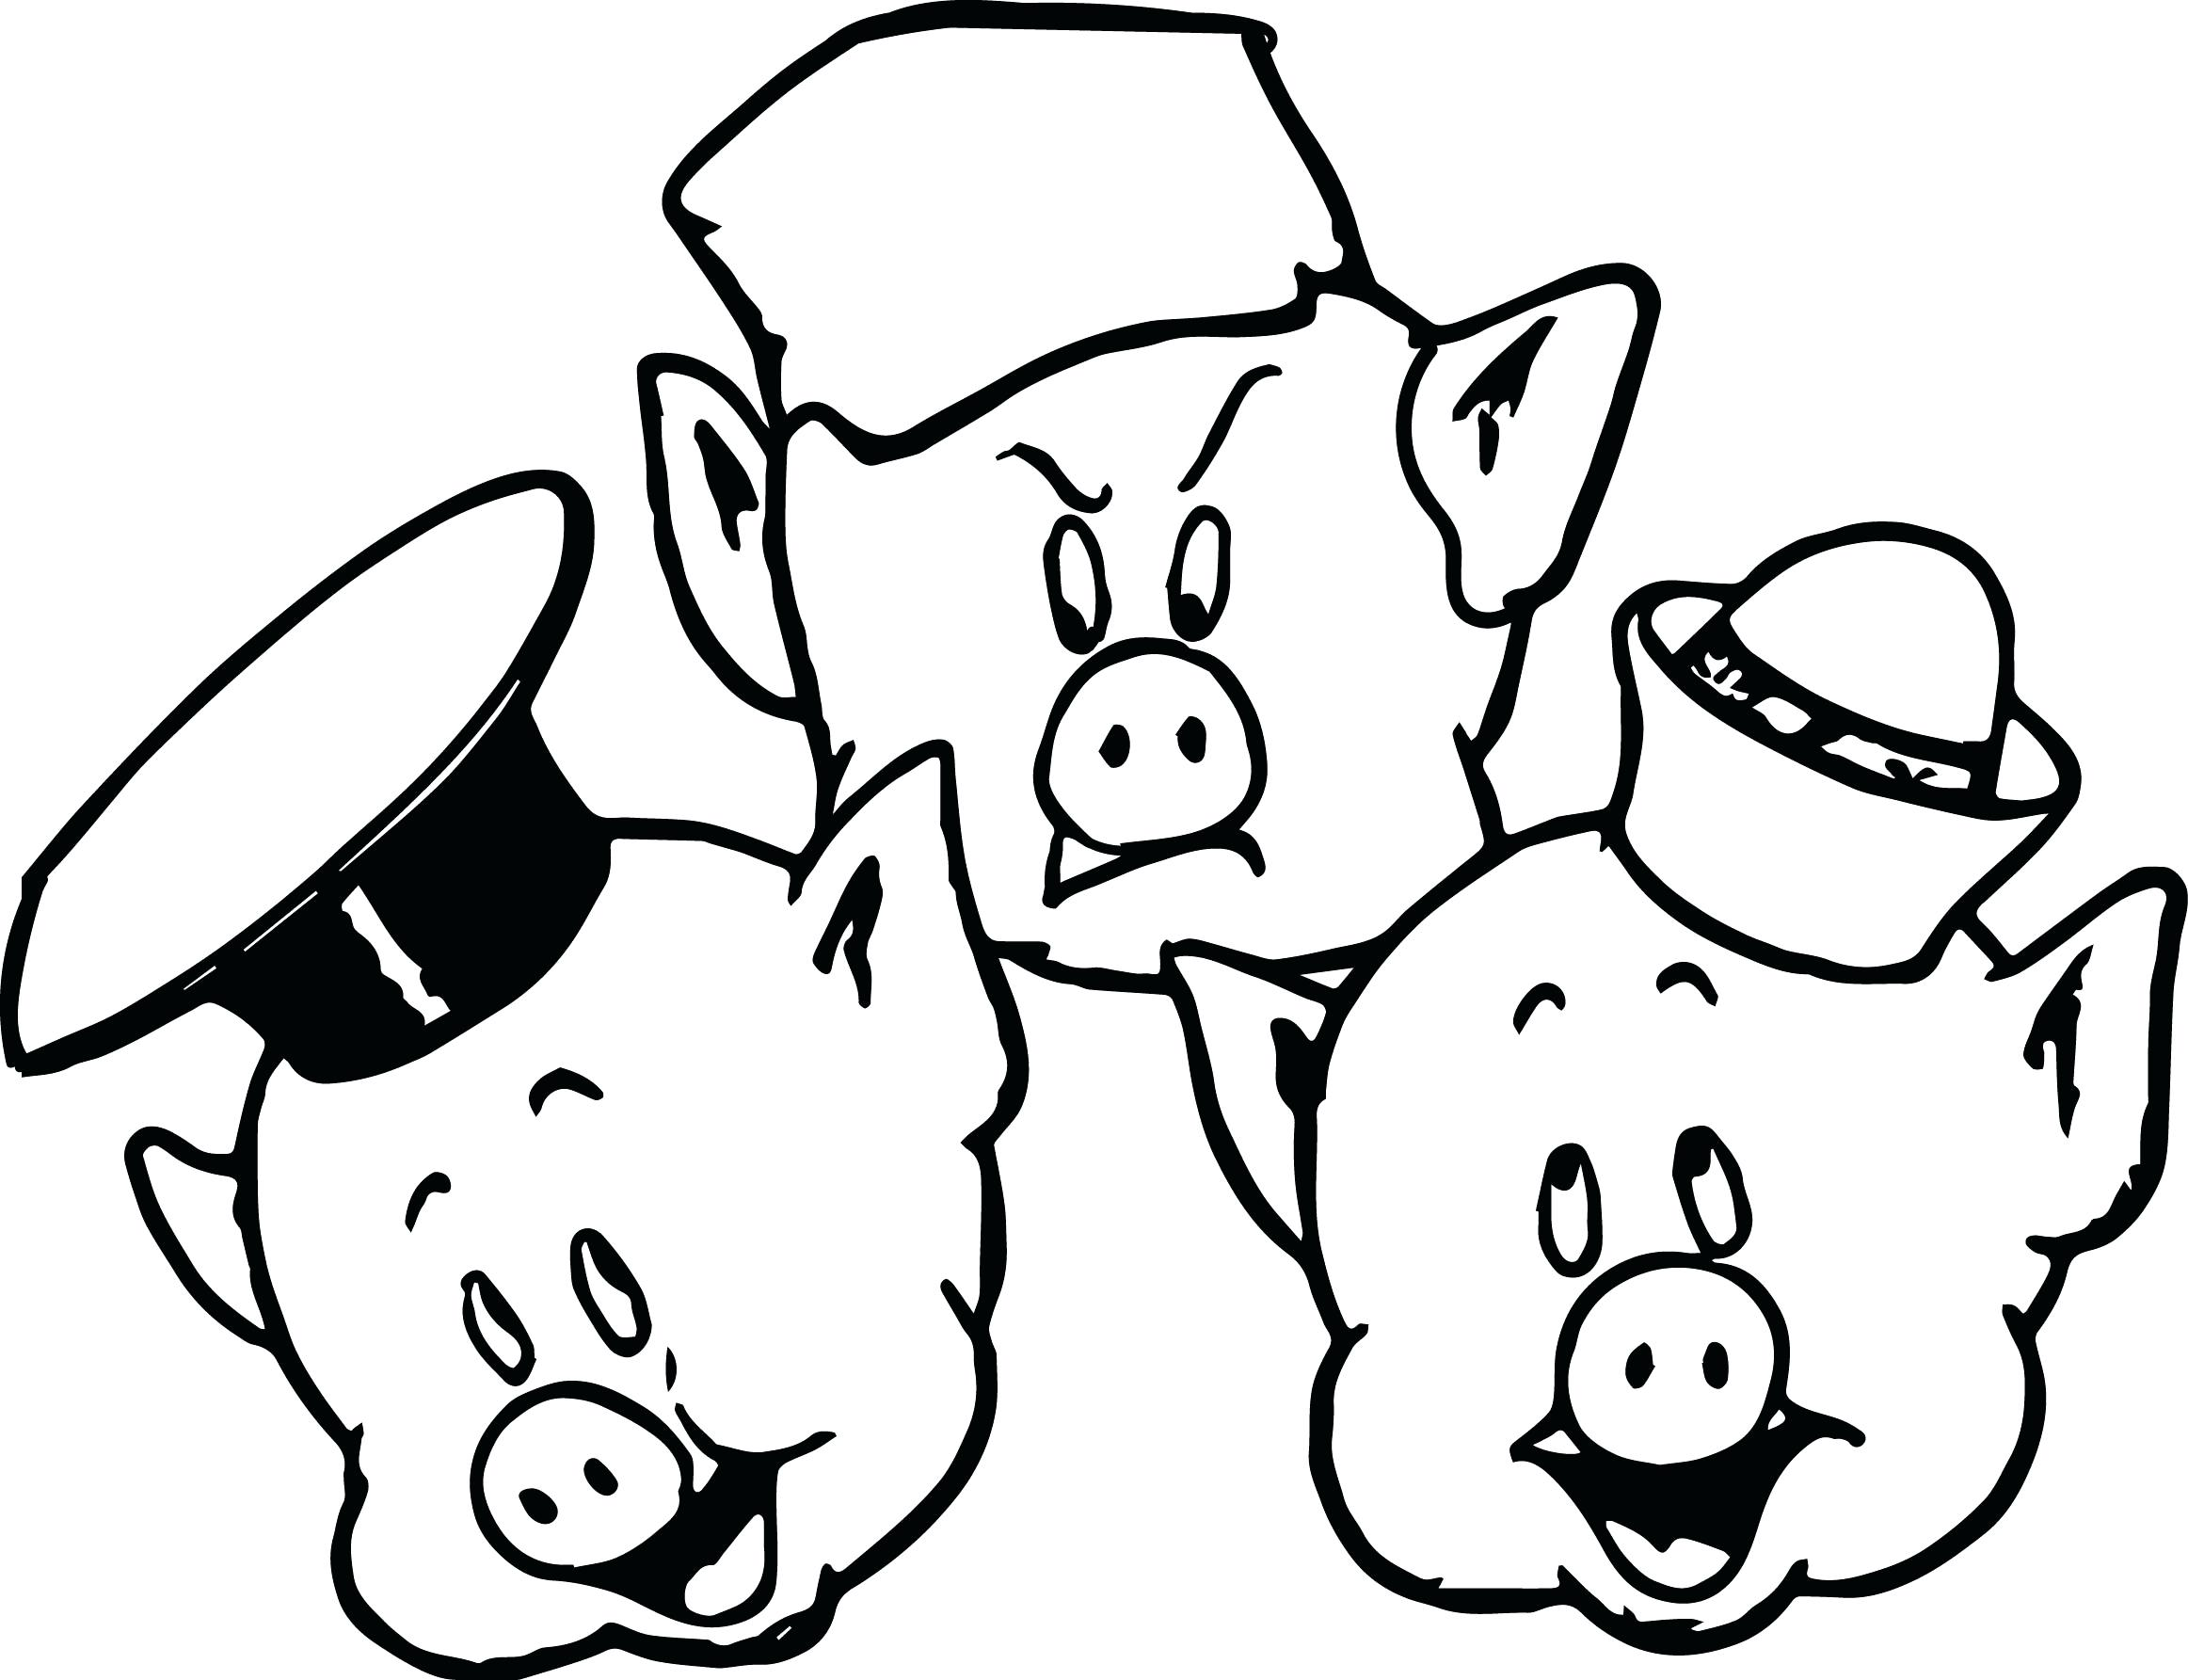 Three Little Pigs Drawing at GetDrawings.com | Free for personal use ...